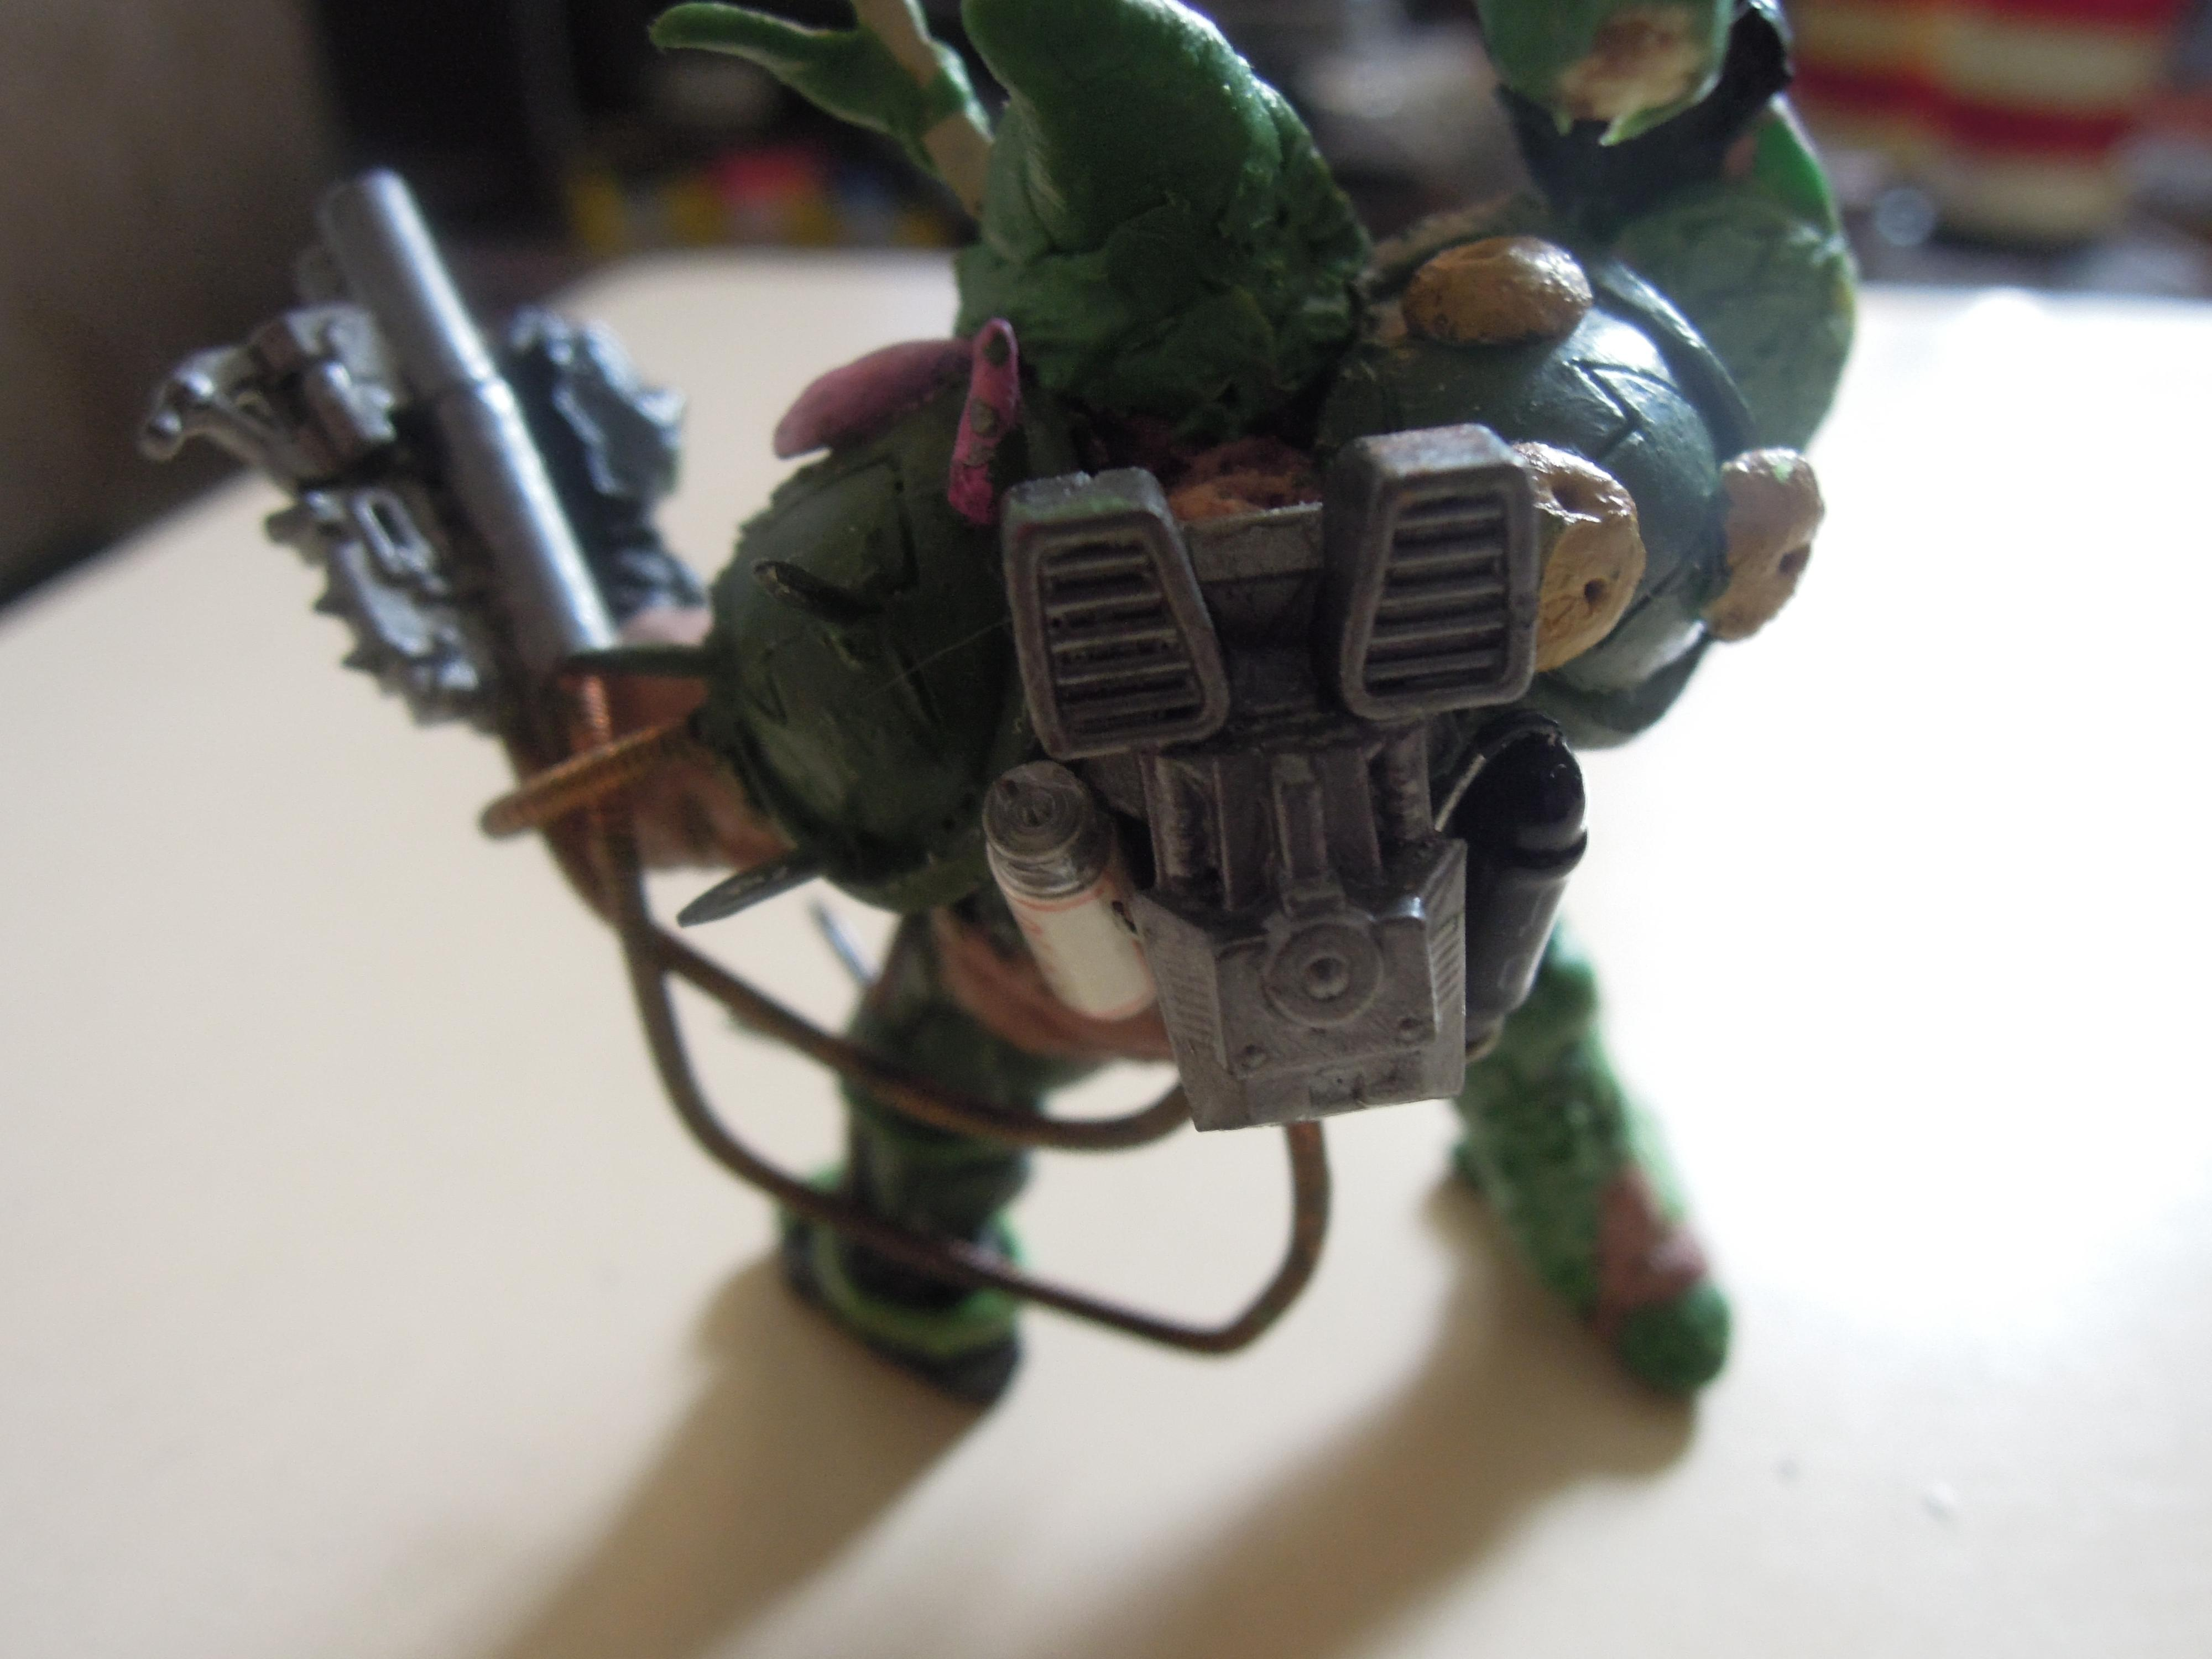 Blight, Chaos, Chaos Space Marines, Conversion, Daemon Prince, Death Guard, Guts, Heretic Astartes, Hood, Nurgle, Plague, Plague Marines, Poleaxe, Rot, Scratch Build, Technolog, Tehnolog, Warhammer 40,000, Work In Progress